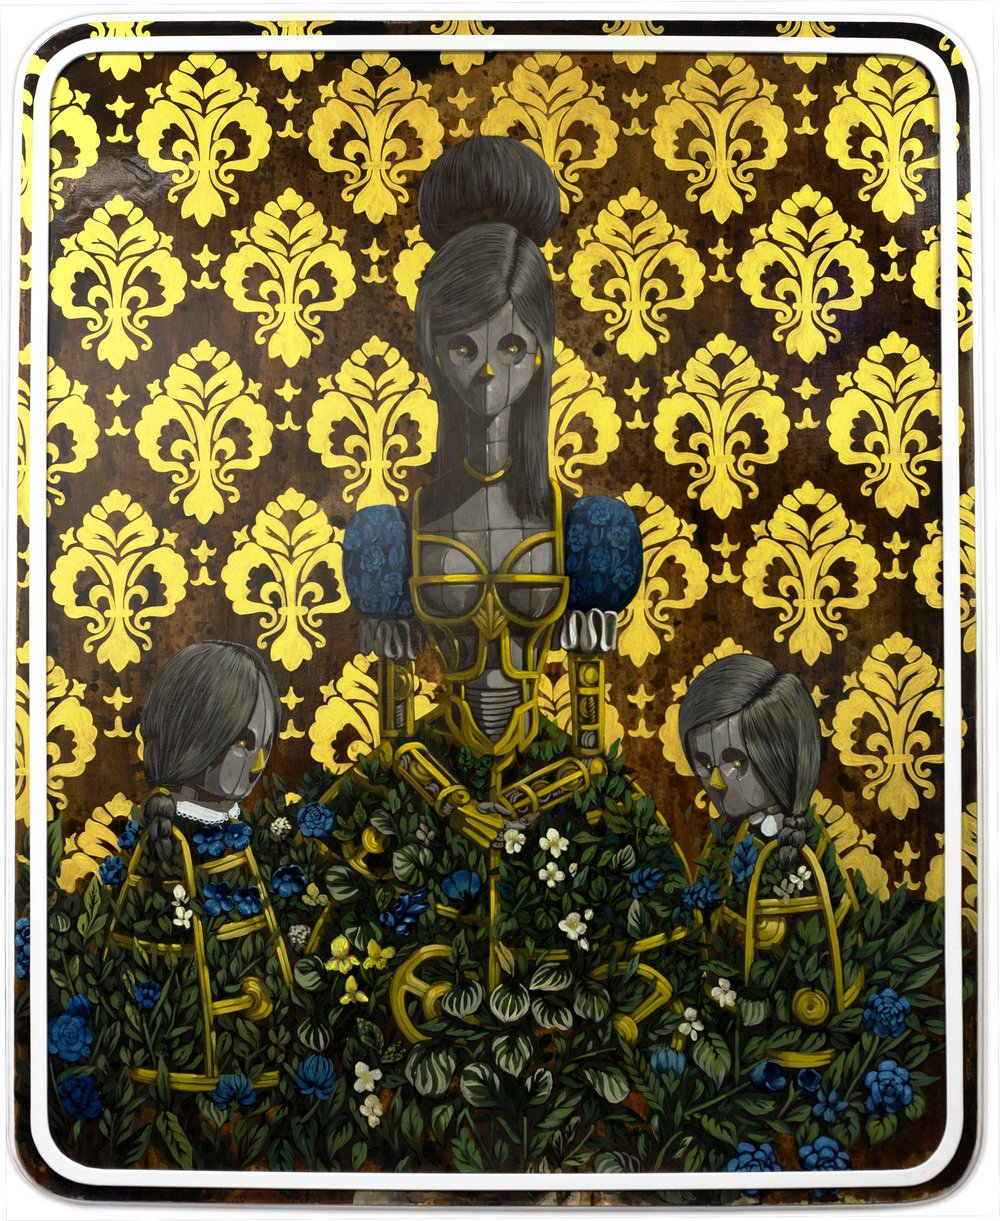 "PIXELPANCHO  Mothers like Daughters (Family Portrait Series) , 2017  Acrylic on reclaimed wood panel. Signed, dated and annotated ""Family Portraits!"" on reverse  59 x 48 in."